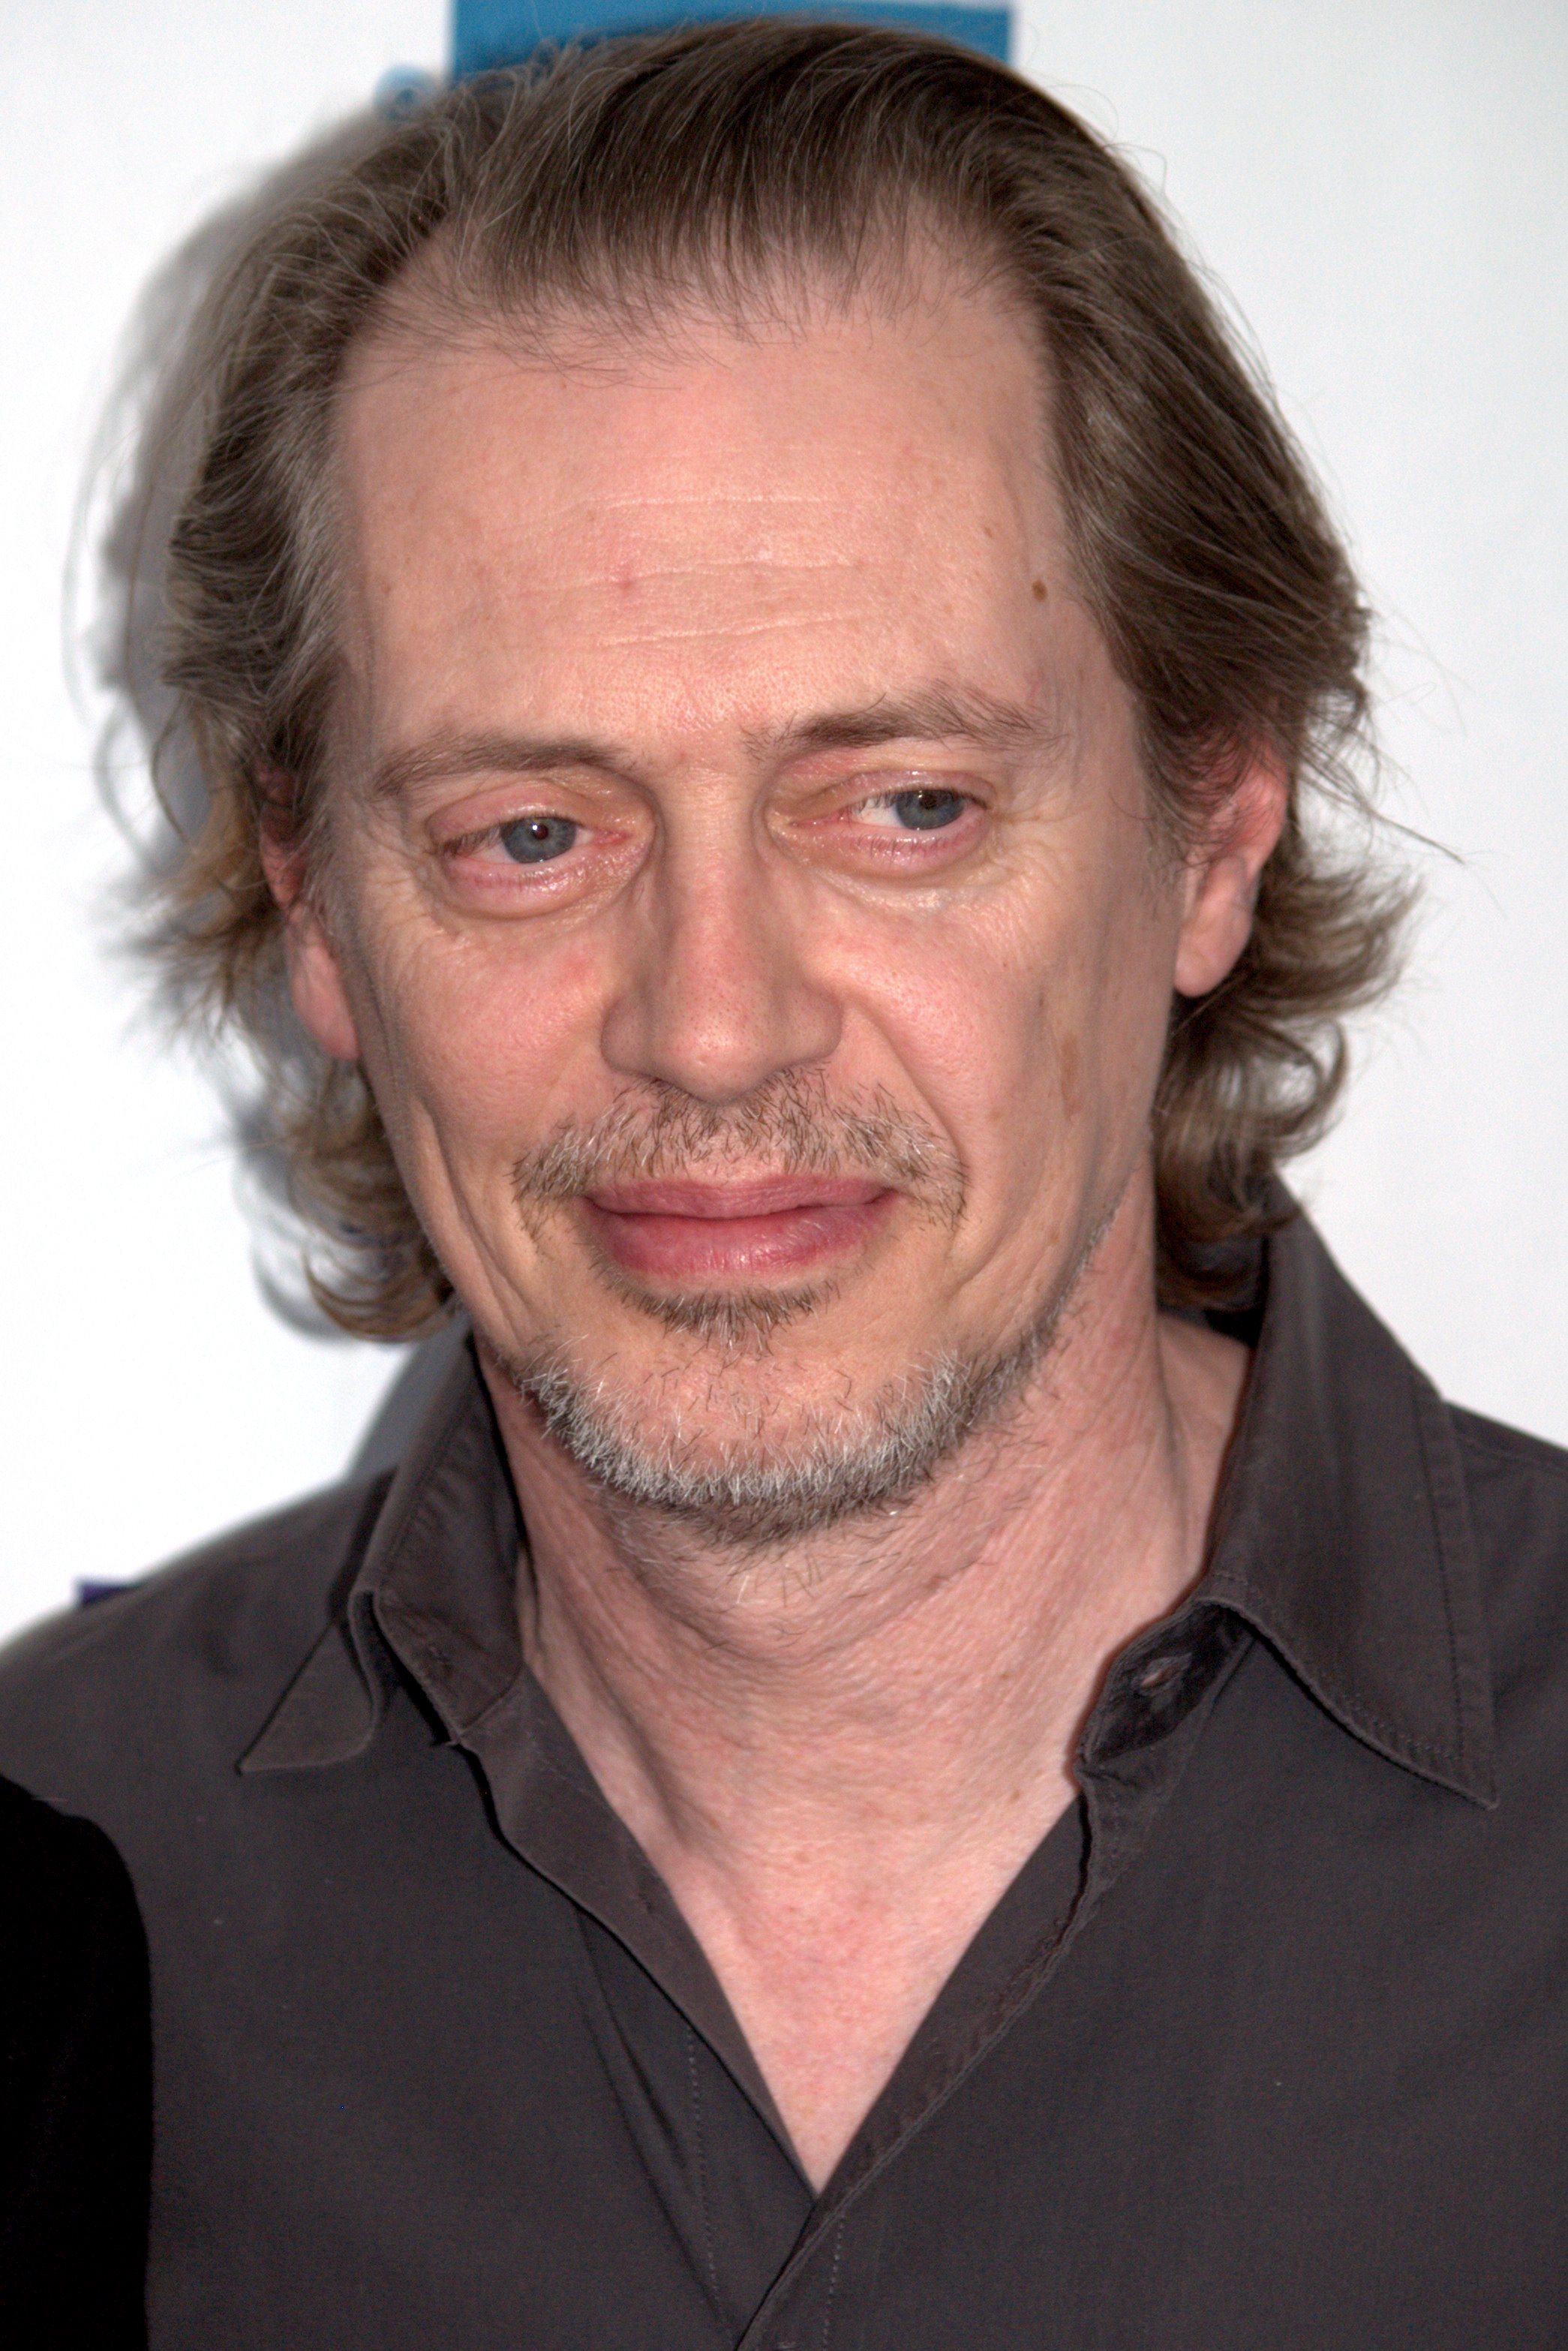 The 60-year old son of father John Buscemi and mother Dorothy Buscemi, 175 cm tall Steve Buscemi in 2018 photo